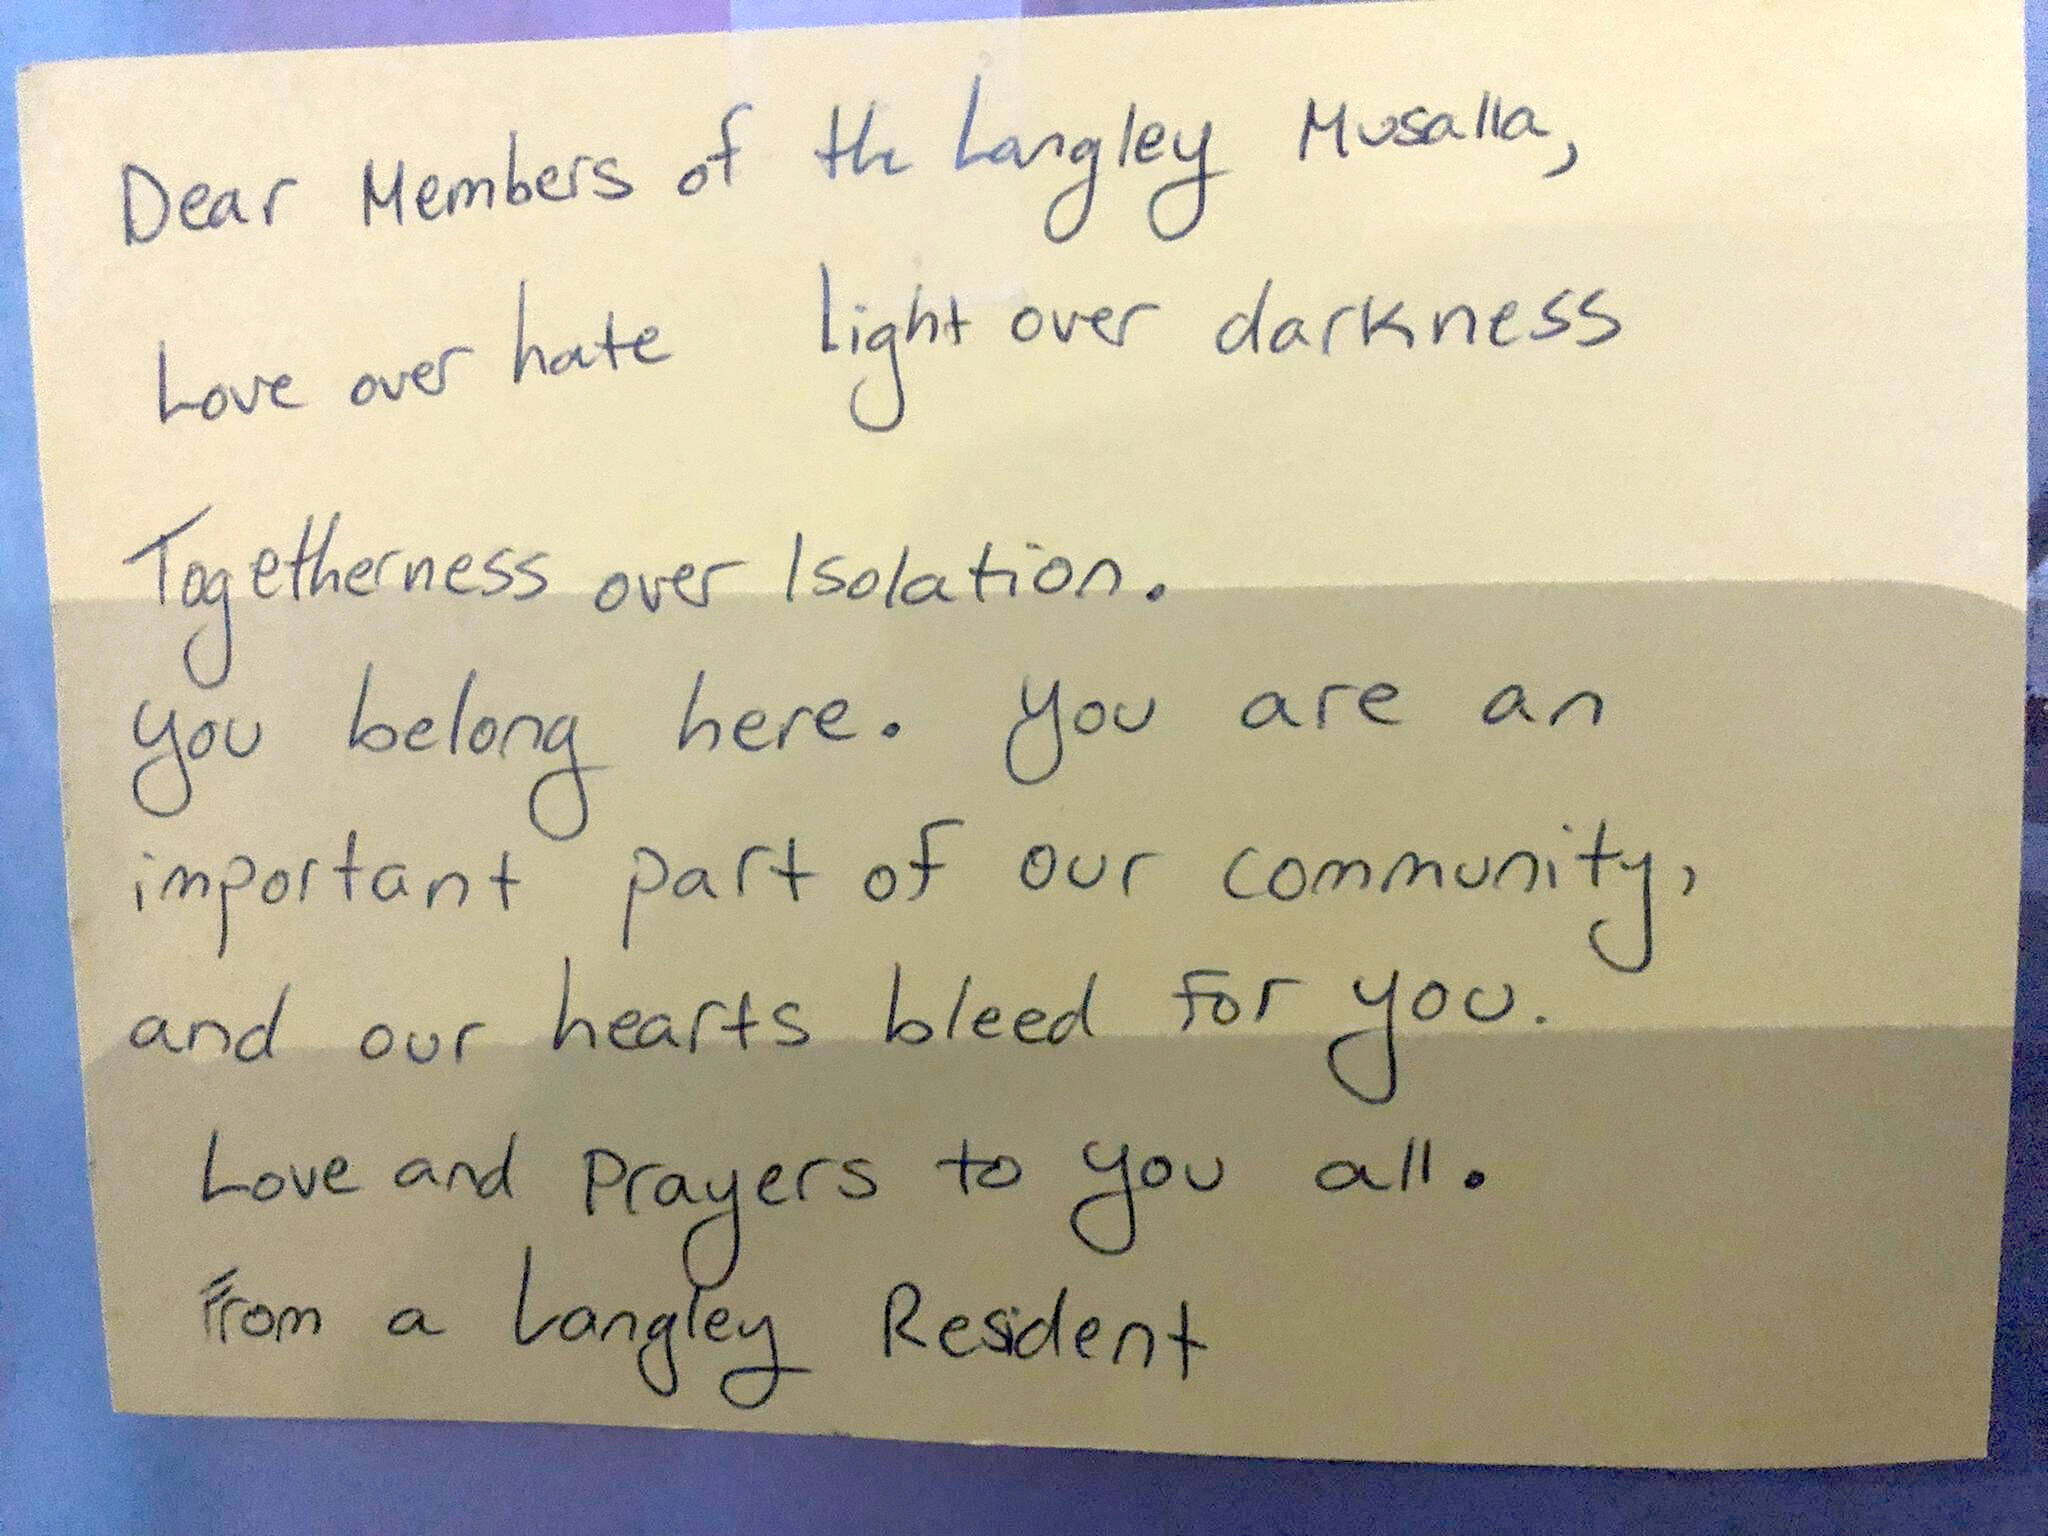 Letters and calls of solidarity and encouragement have been coming in to the Langley Islamic Centre in the wake of a threat last month. (Langley Islamic Centre photo)